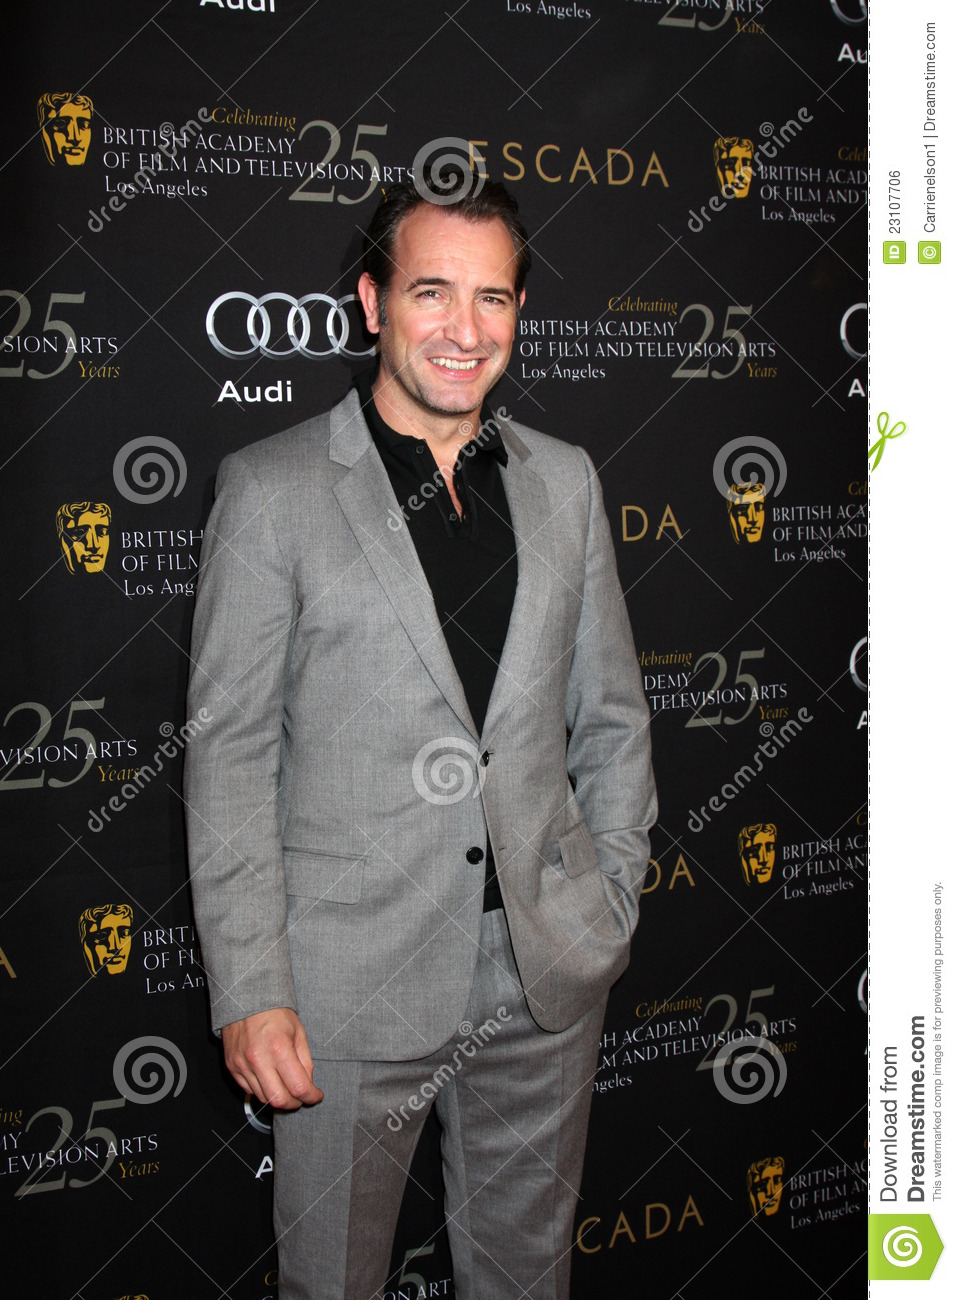 Jean dujardin editorial photo image 23107706 for Jean dujardin bafta